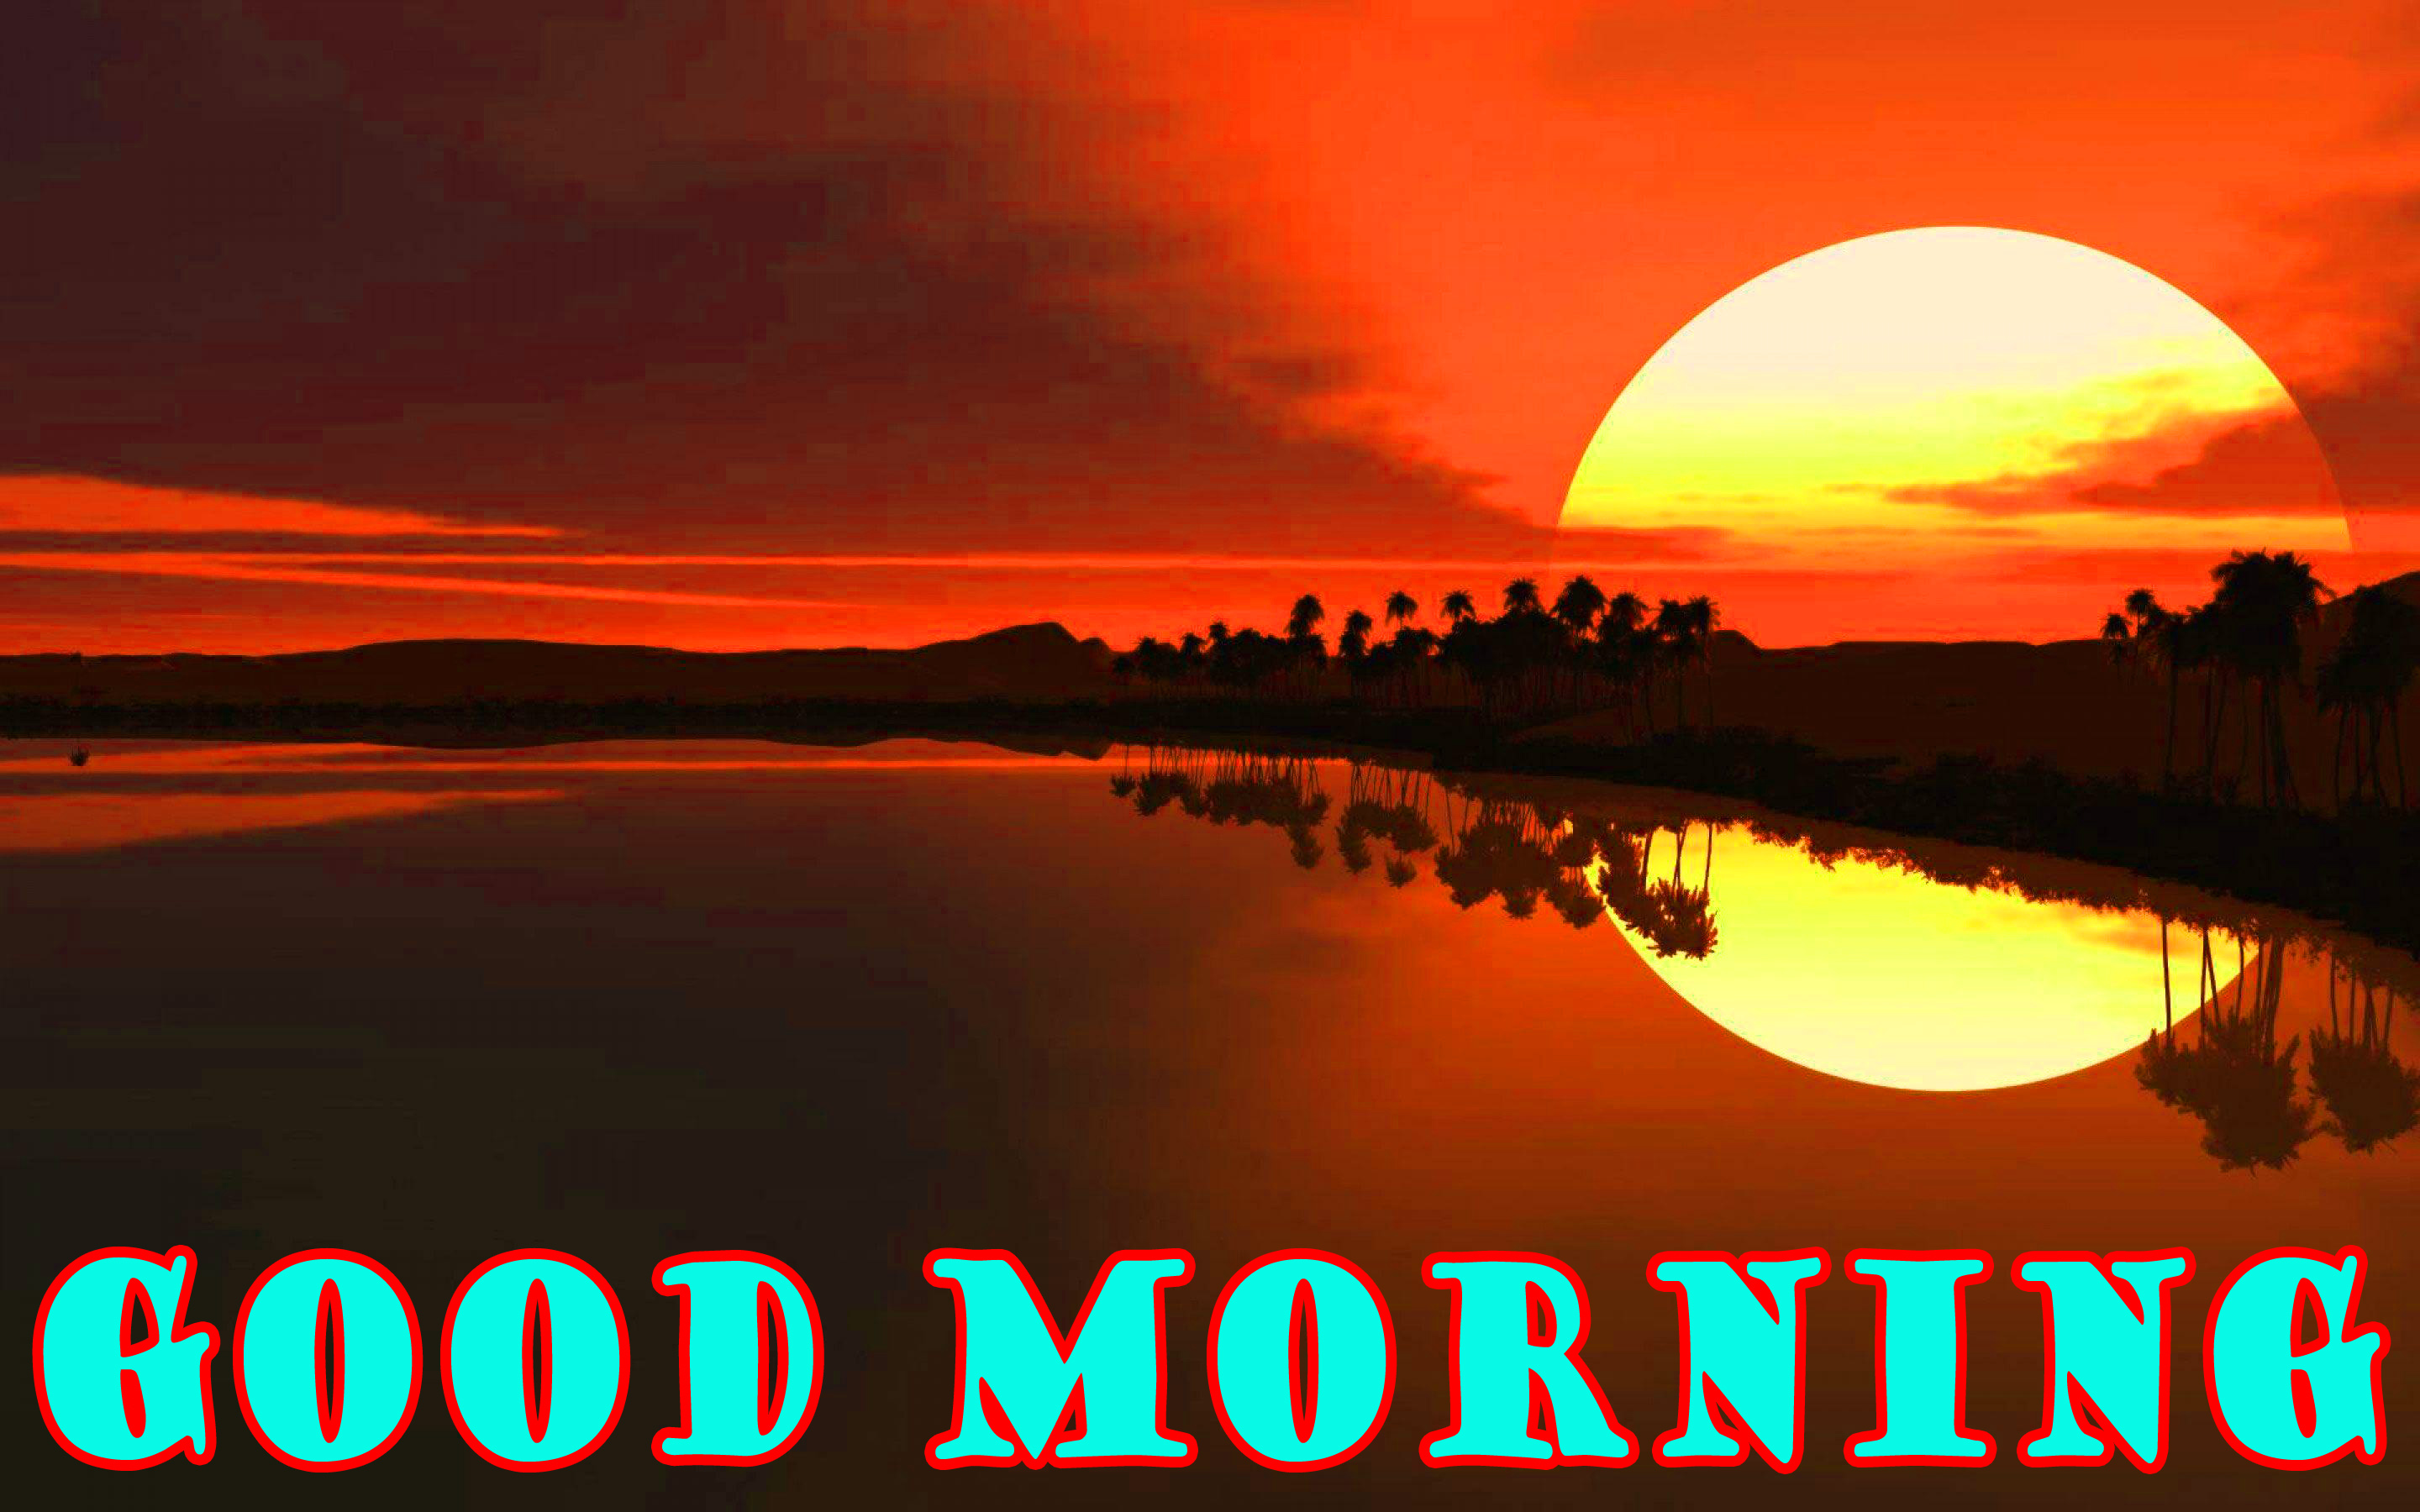 322+ Good Morning Images Wallpaper Photo Pics Pictures HD Download for Whatsapp & Facebook